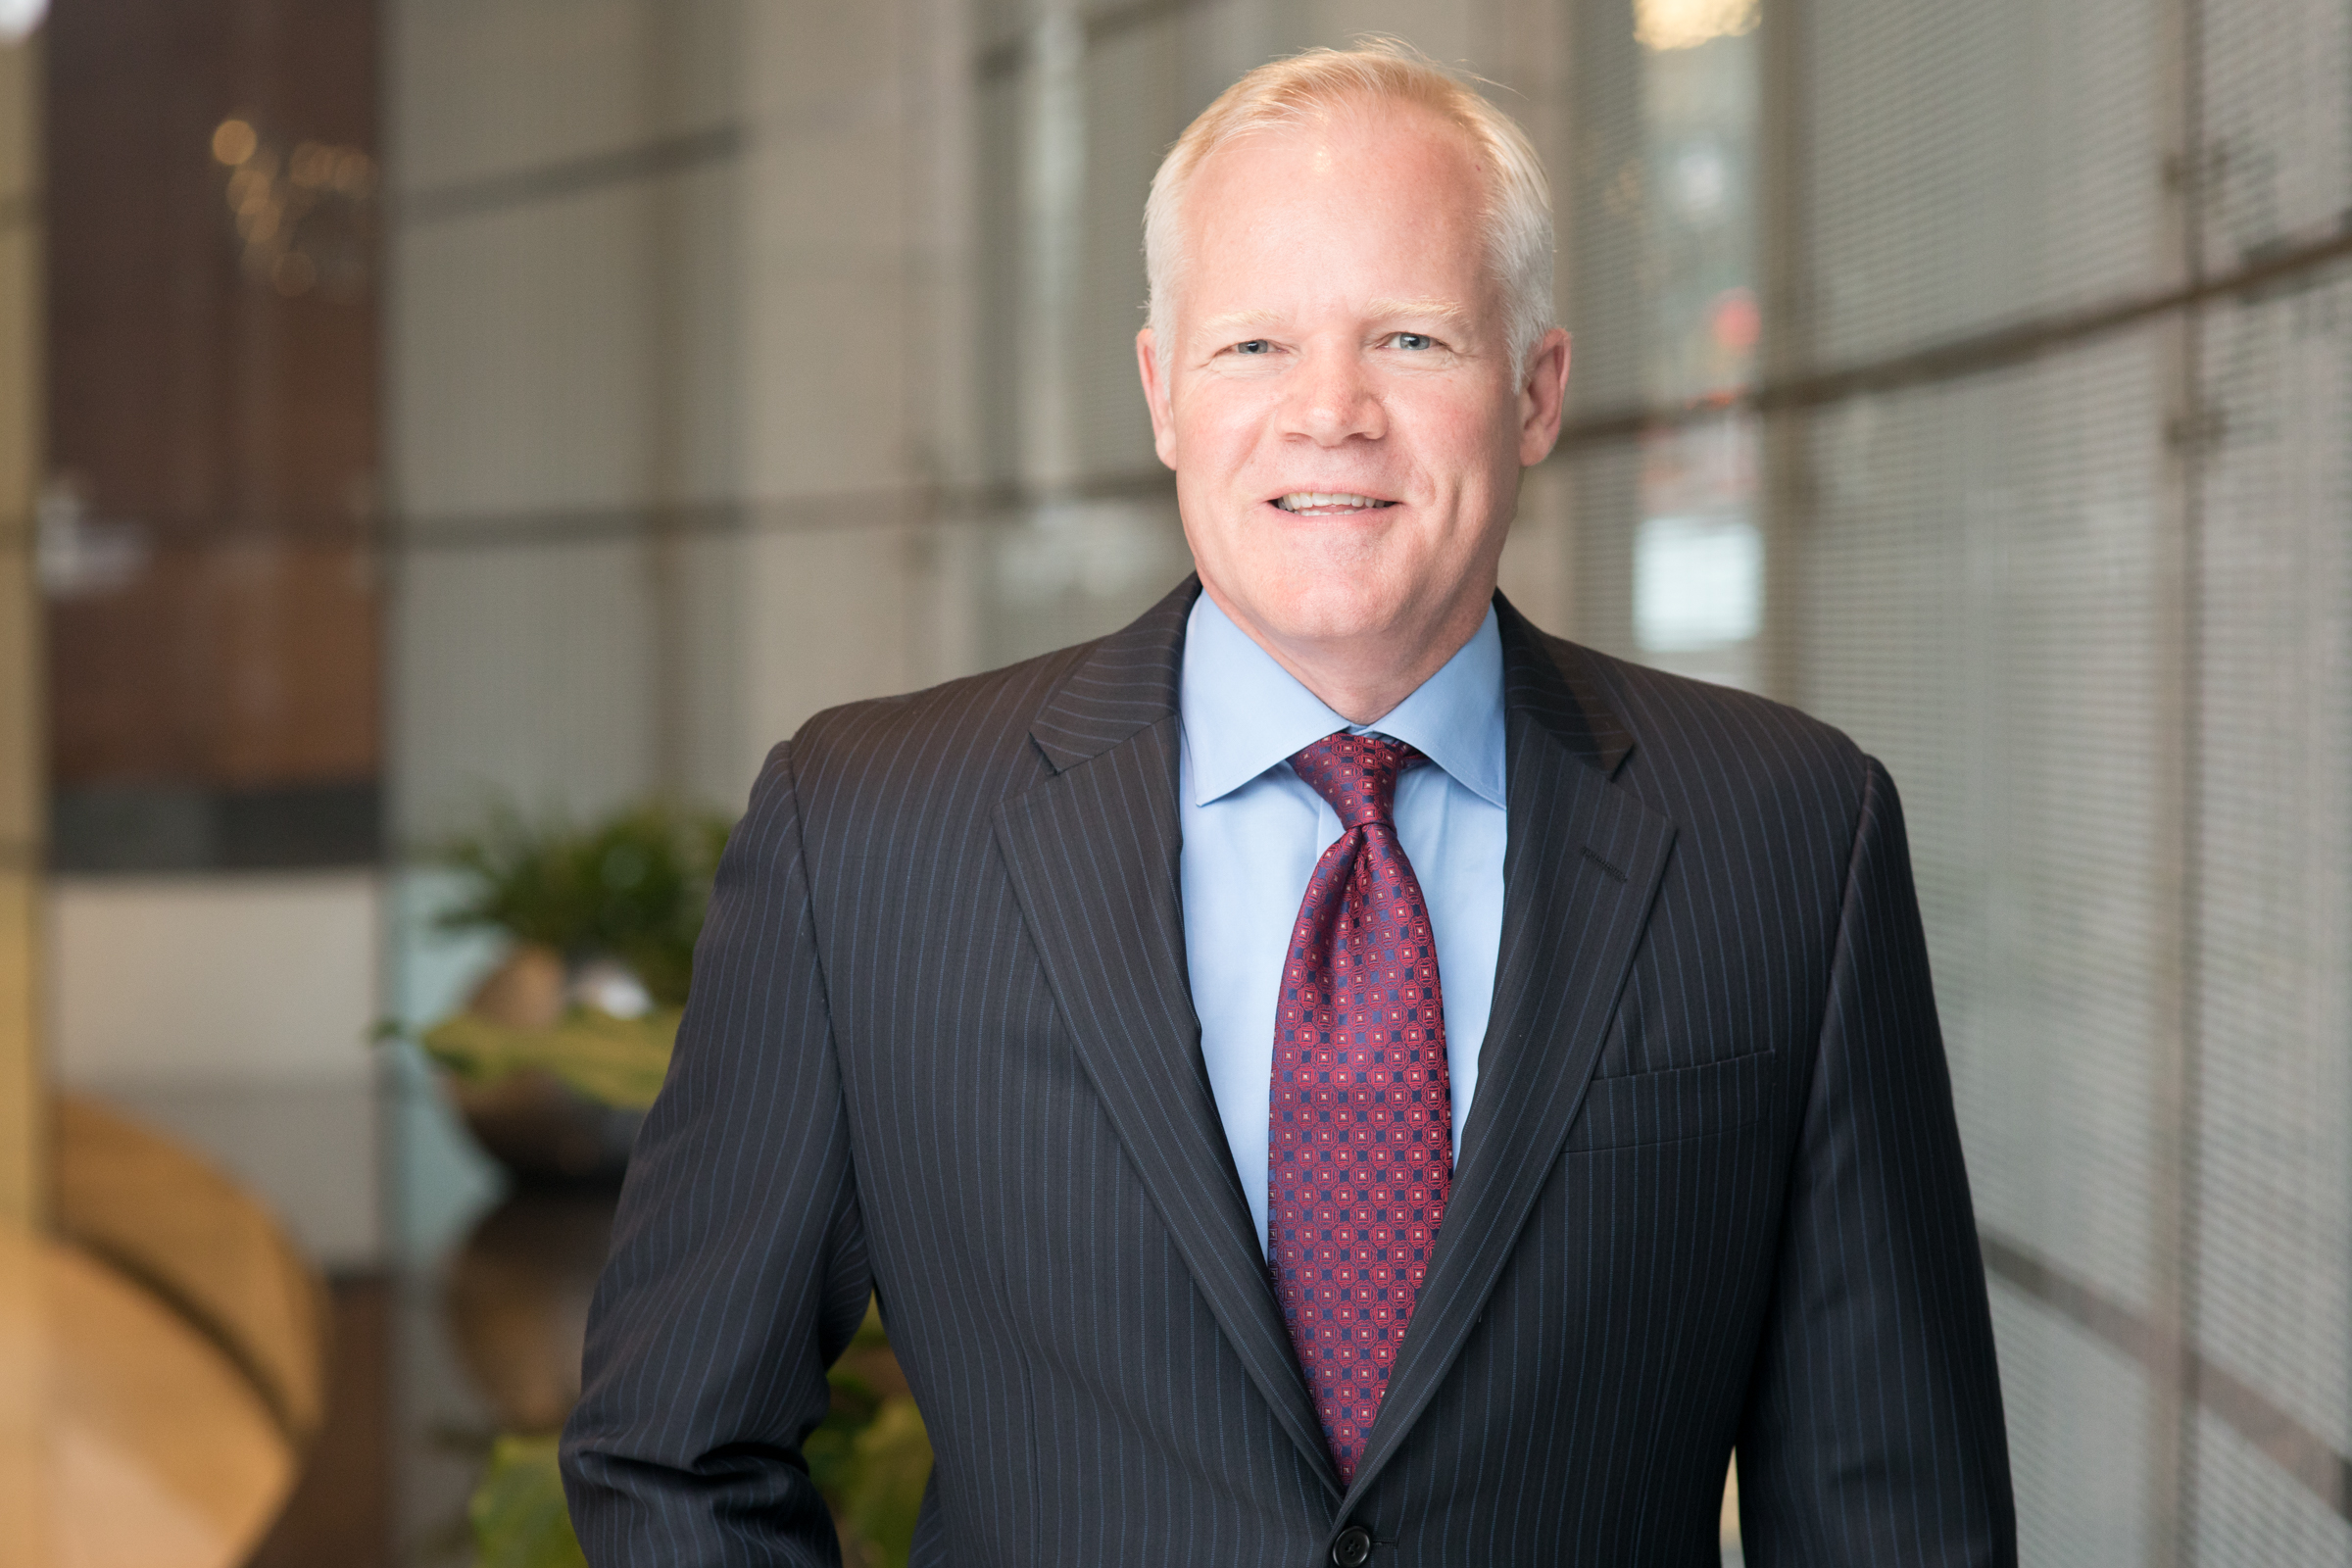 Dalton Edgecomb - Dalton specializes in advising boards, executives, and management teams, as well as serving in interim management roles for companies in both bankruptcy proceedings and out-of-court restructurings. He has advised on nearly 100 successful turnaround engagements across a variety of industries.